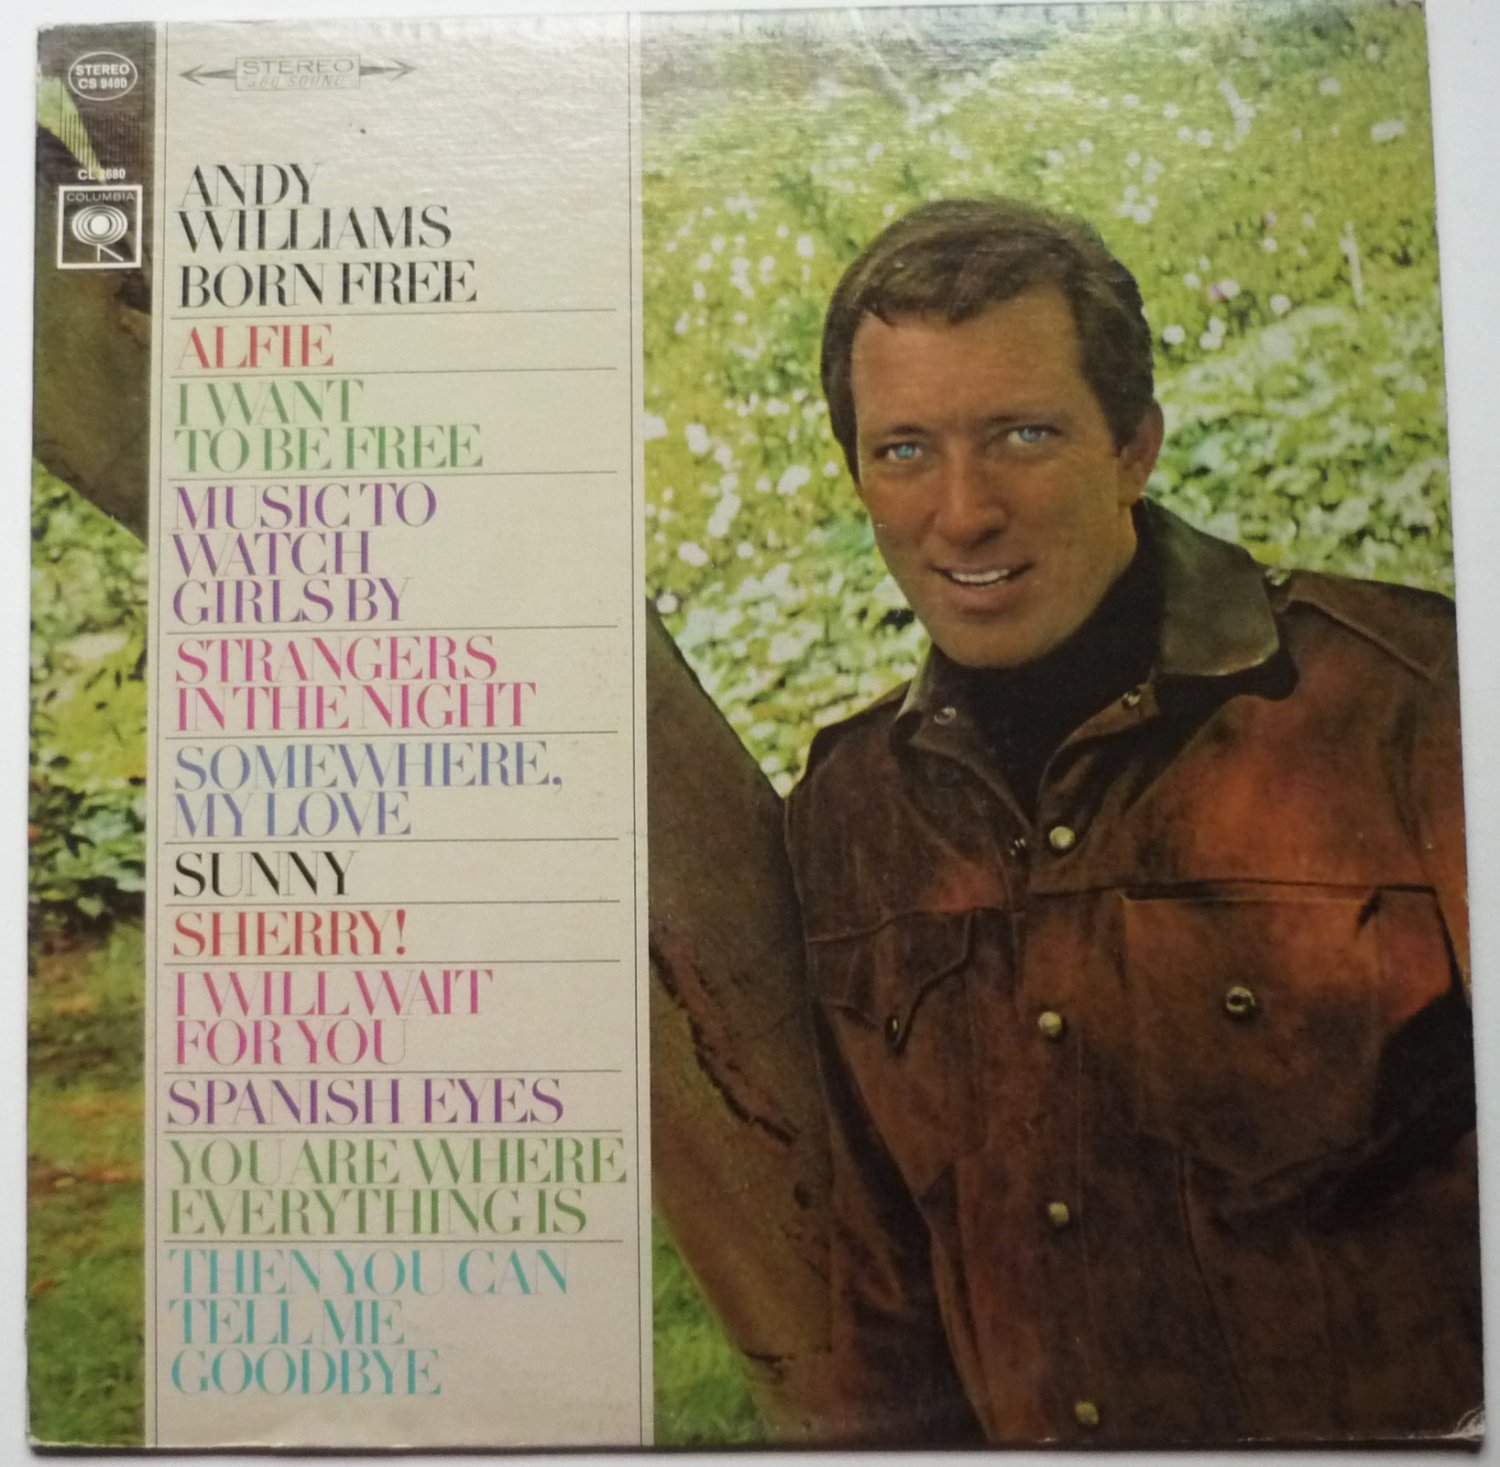 Born Free and Other Songs lp by Andy Williams